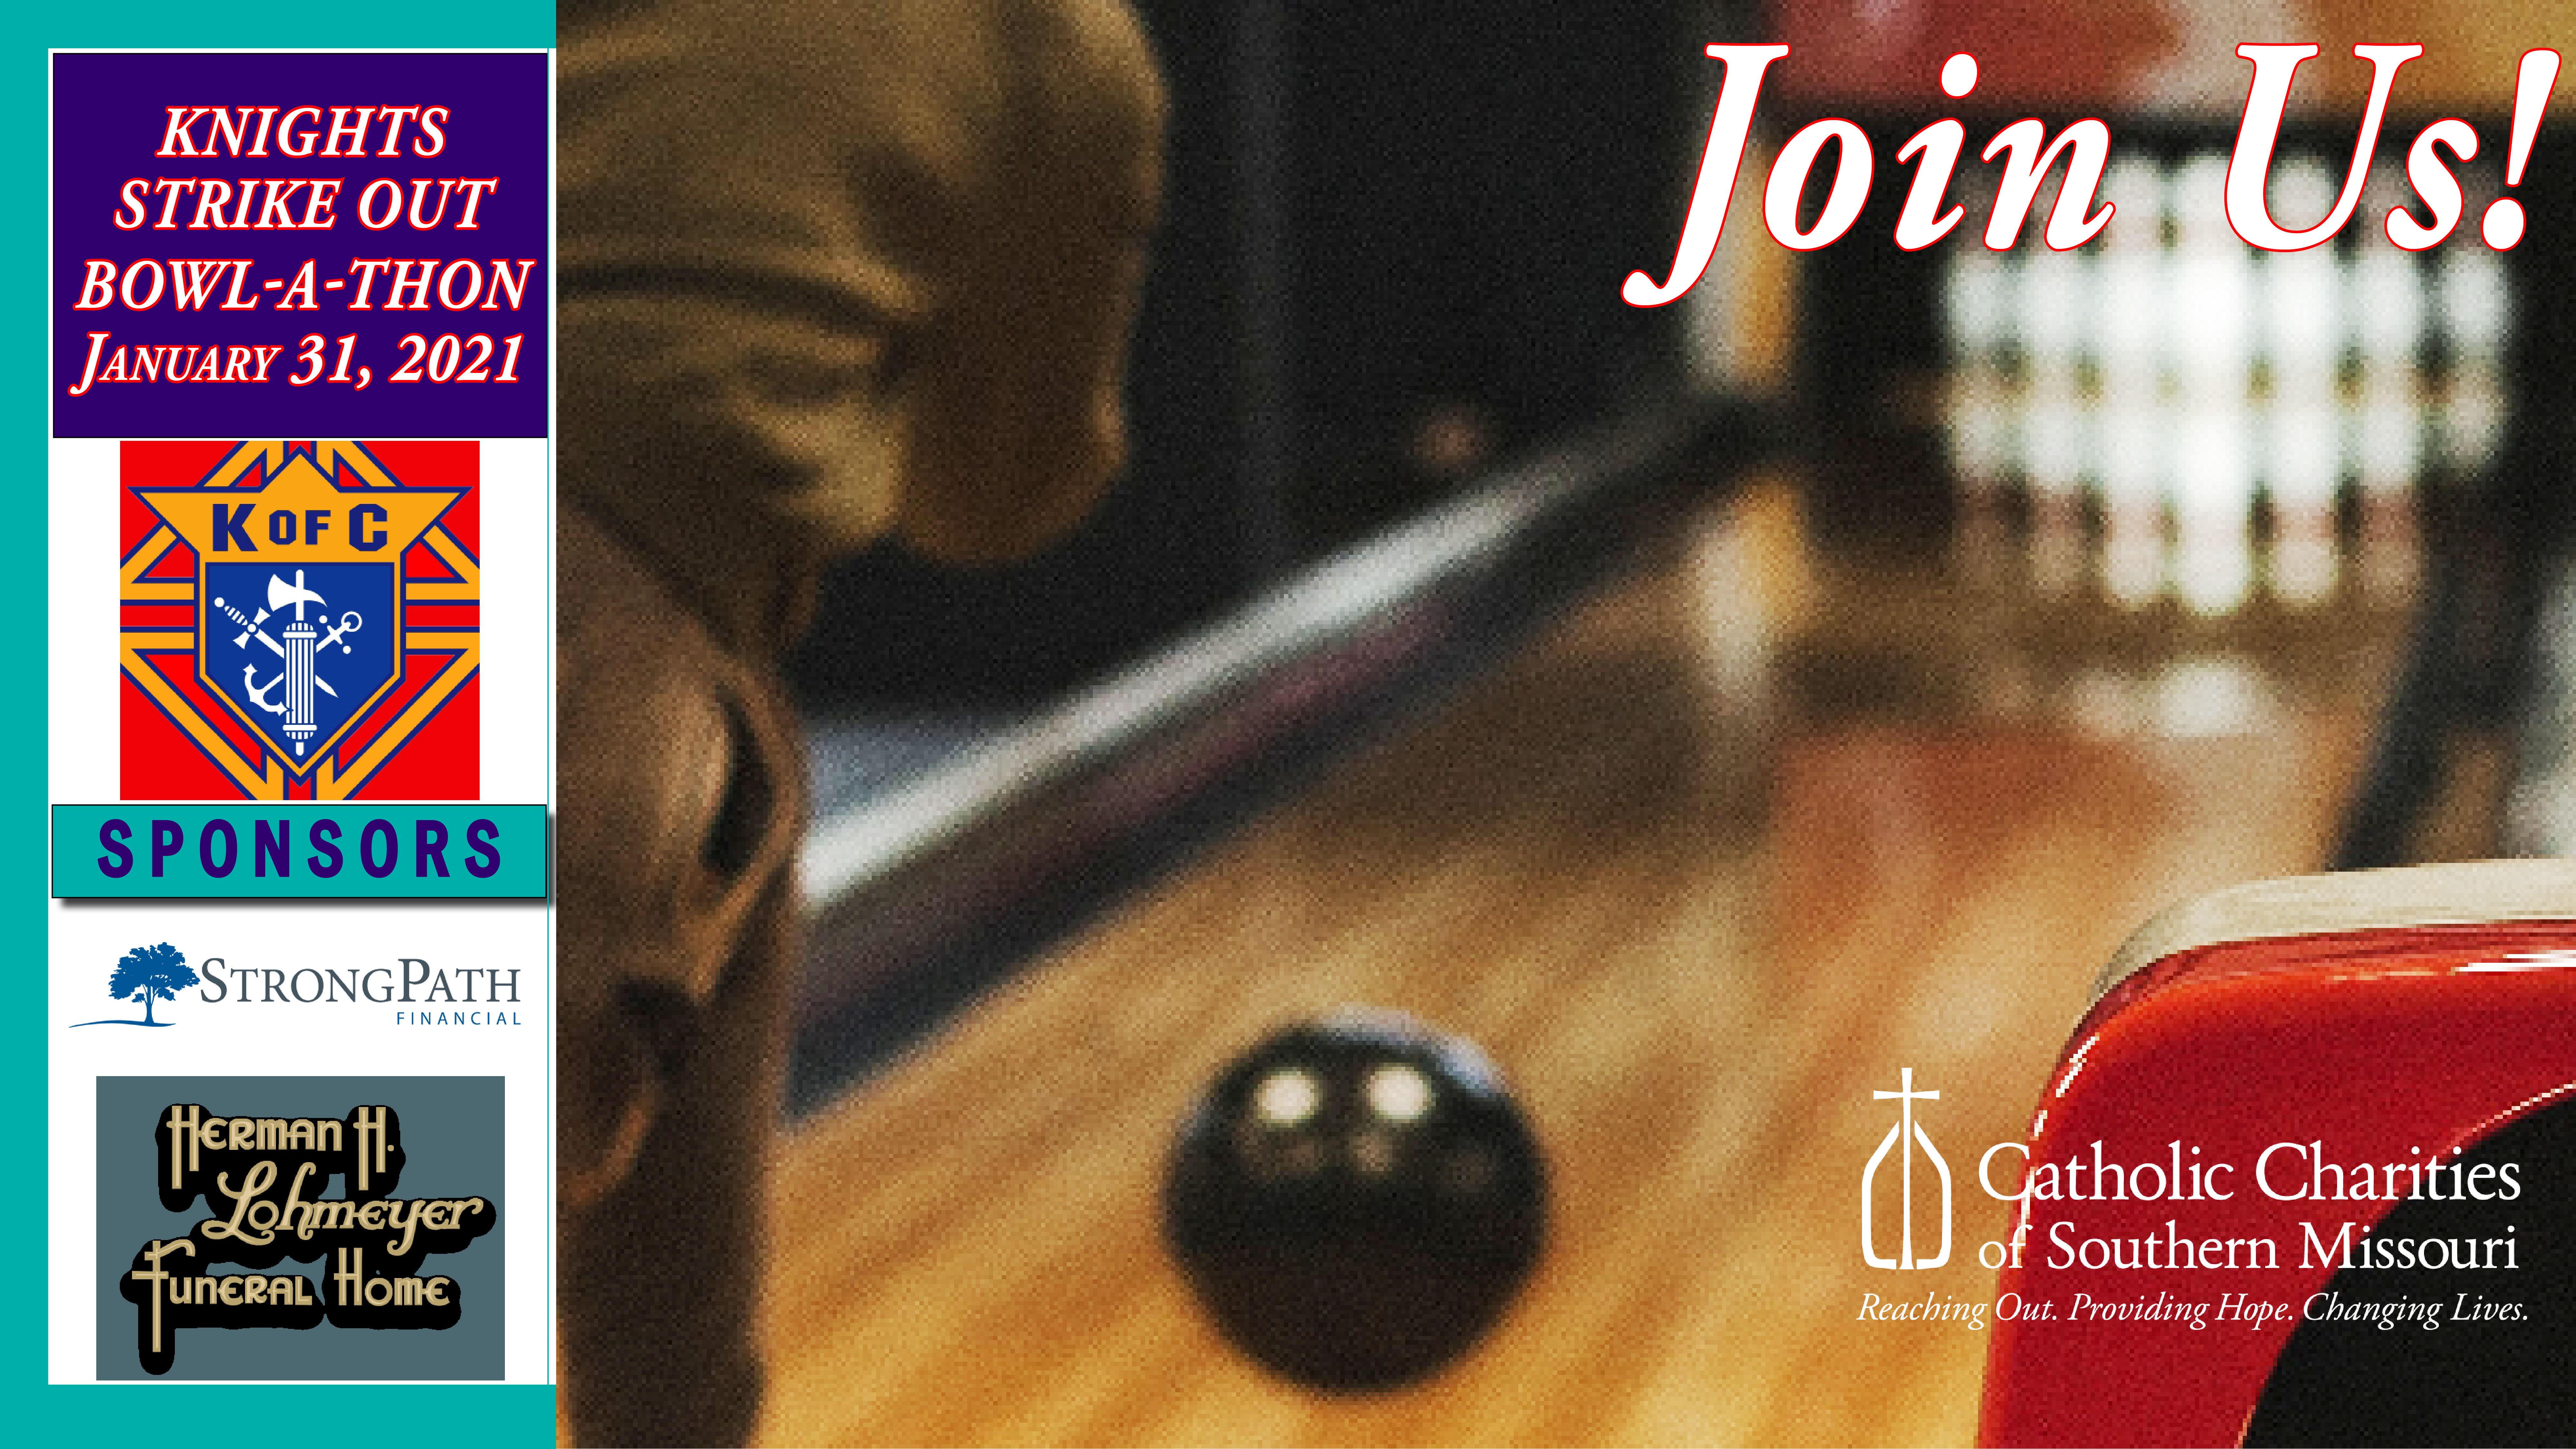 Register for or Sponsor Today the Knights Strike Out Bowl-A-Thon, Jan. 31, 2021